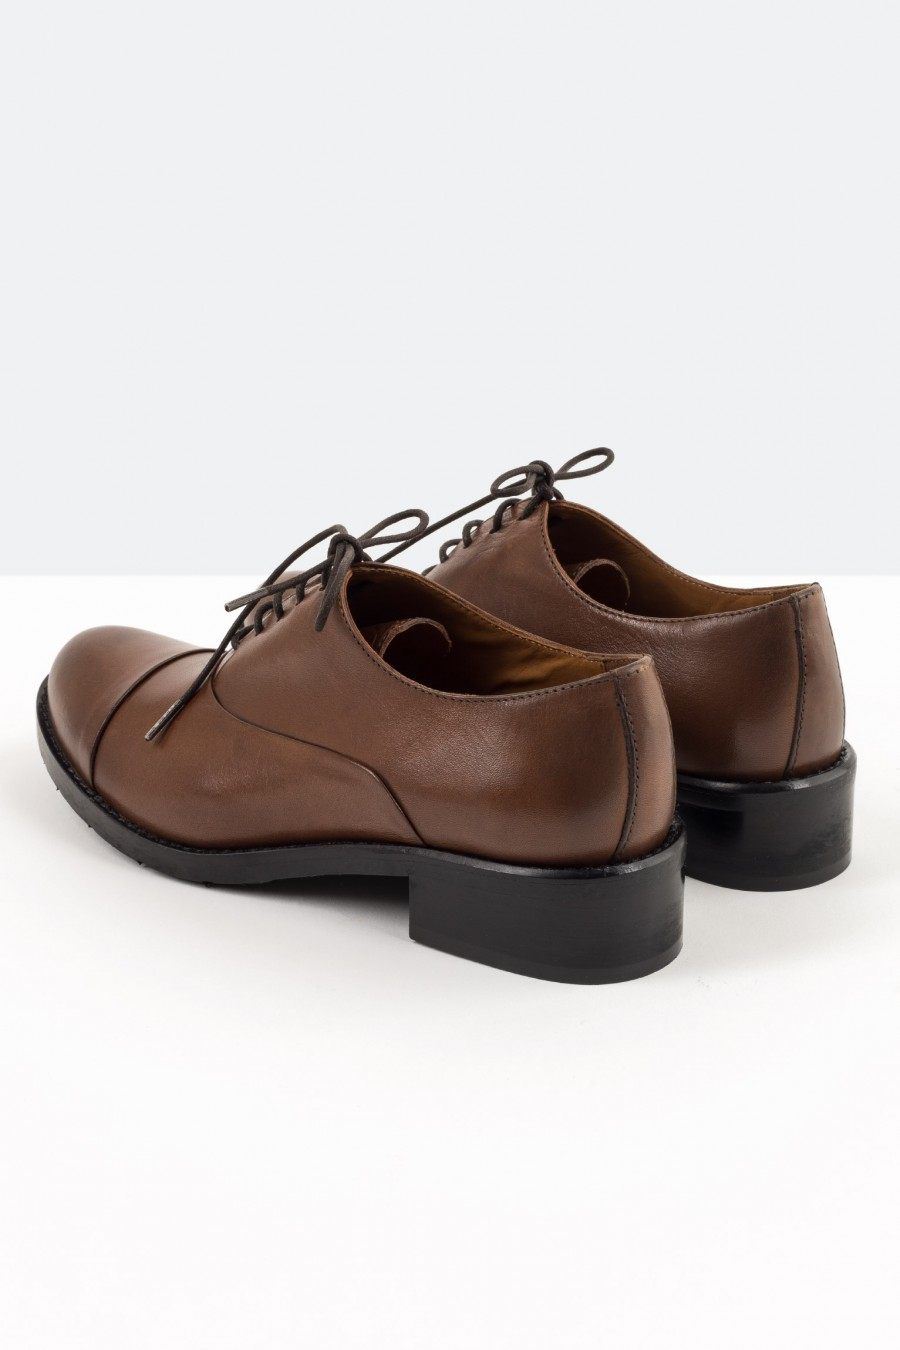 Brown leather Lazzari derby shoes